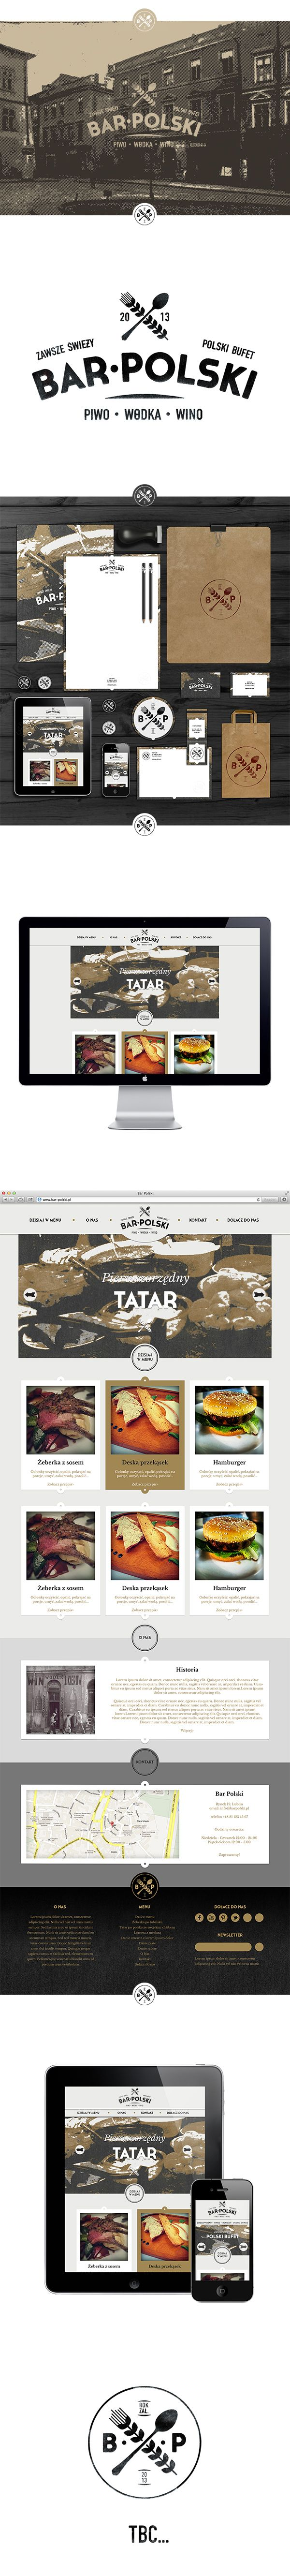 Restaurant branding - print and web design, good mix of retro and modern - love the black and white photography